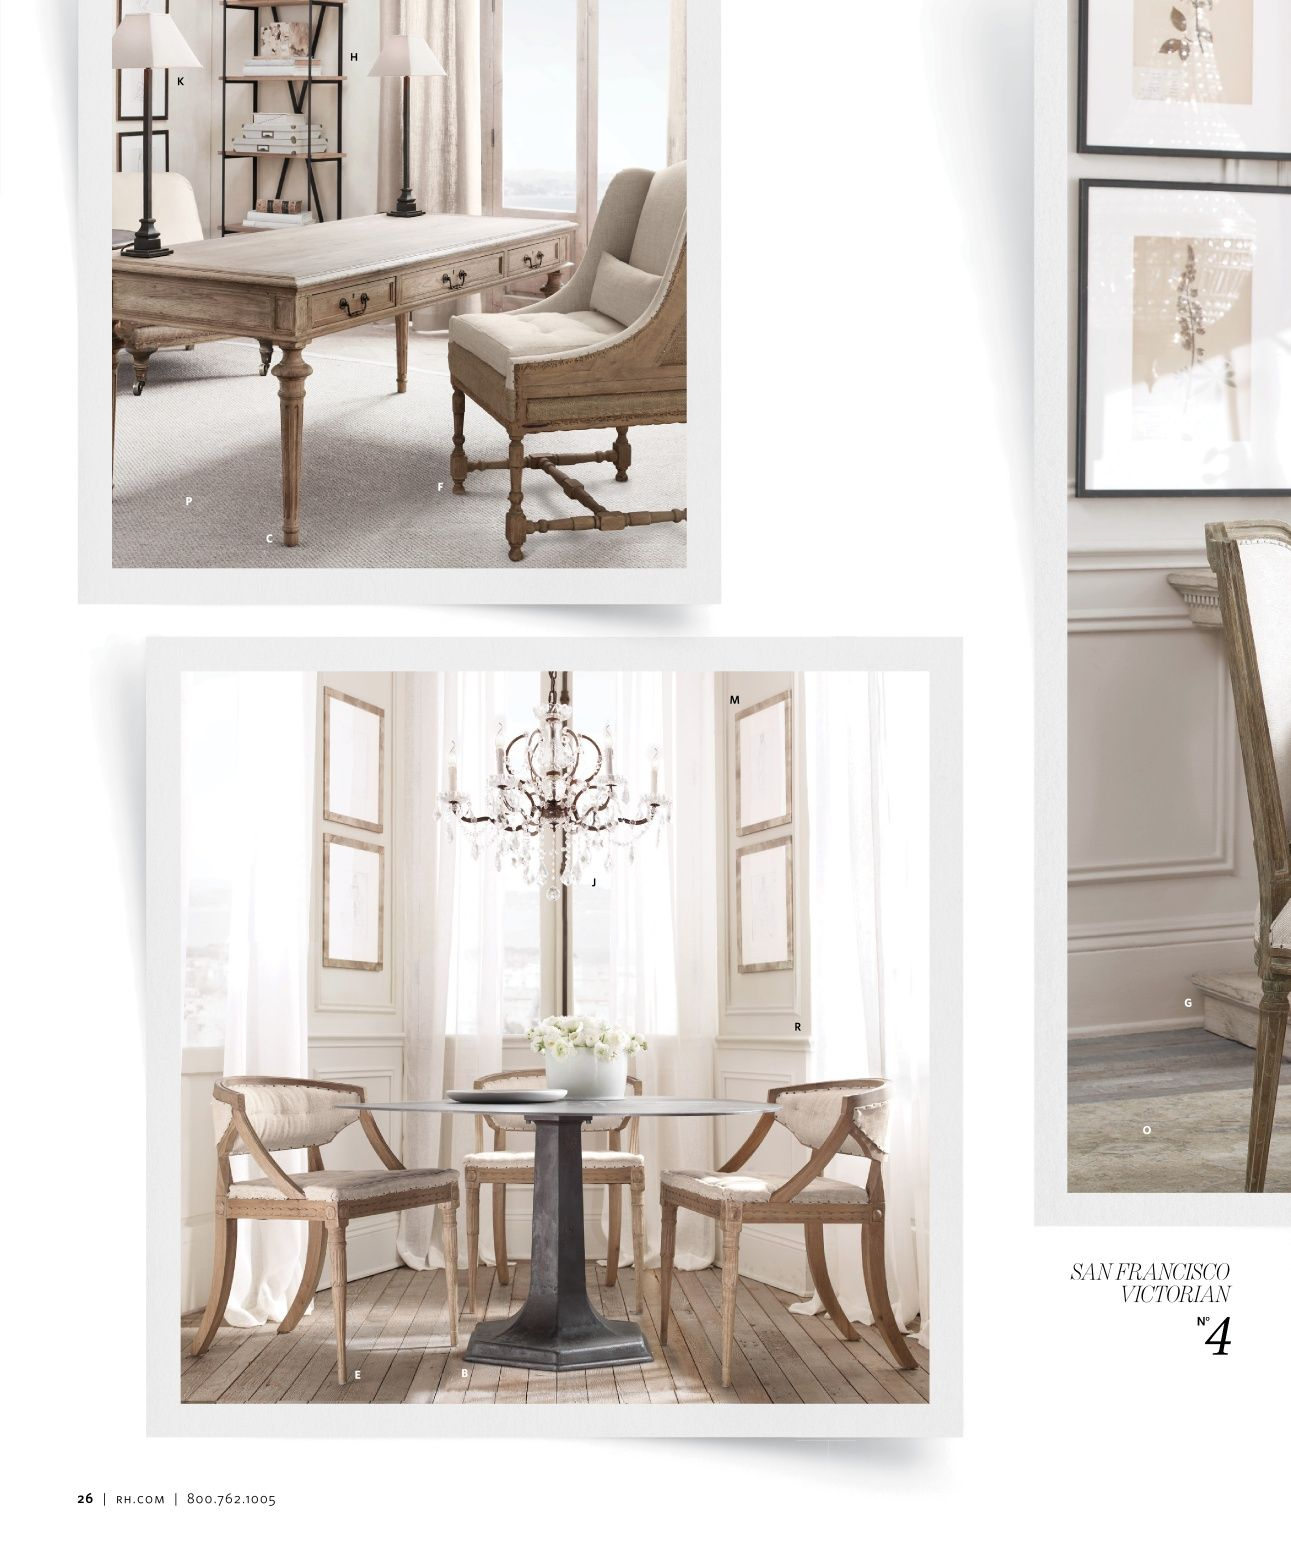 2013 Small Spaces Catalog | Restoration Hardware | Inspiration for ...